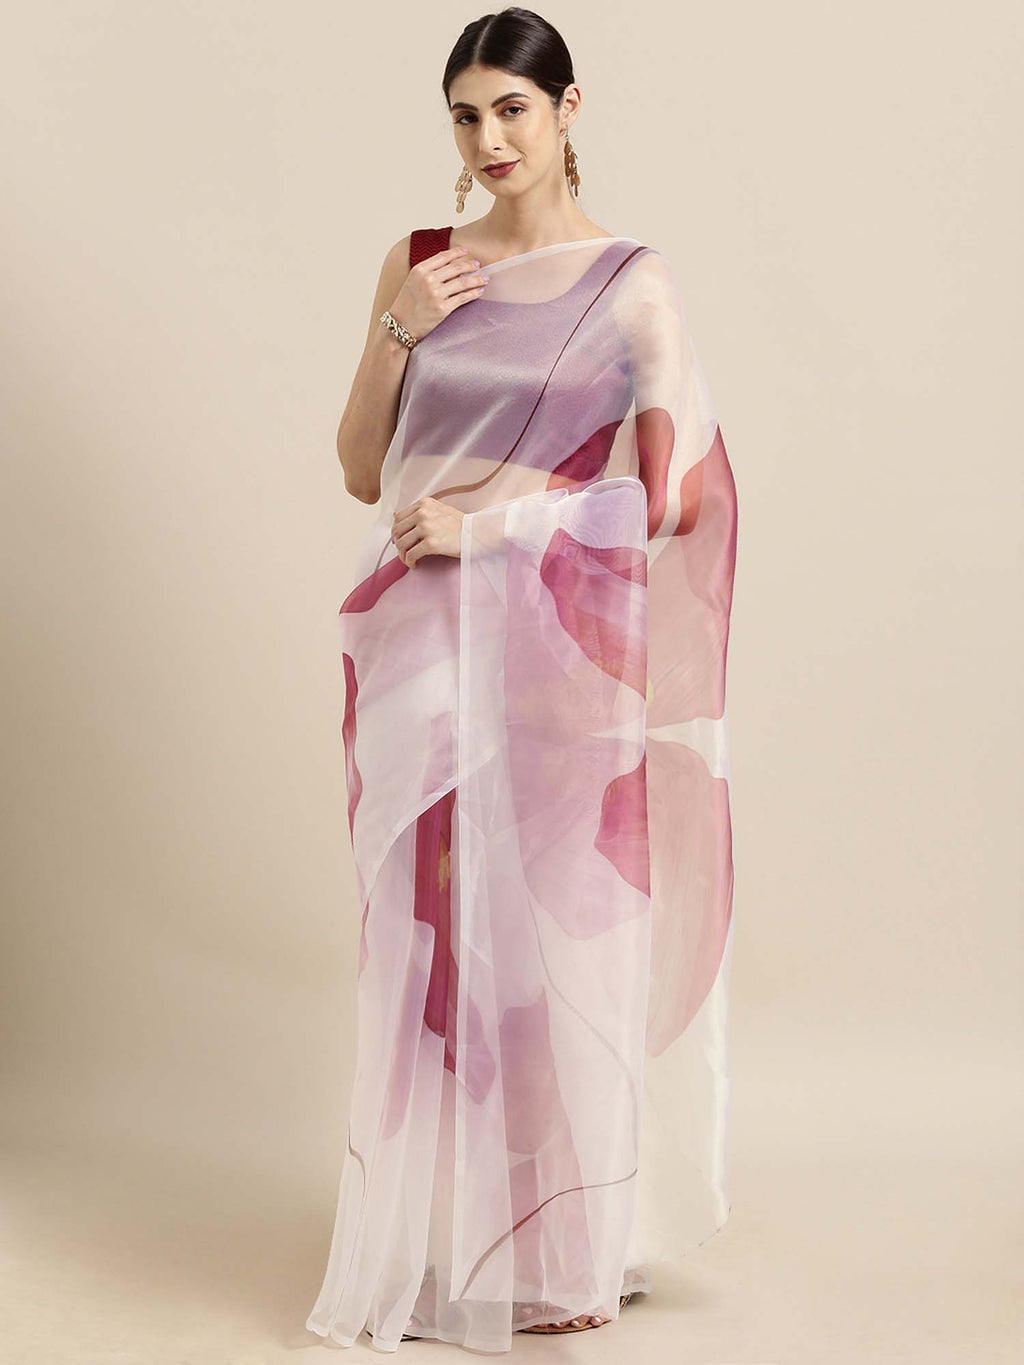 White and Maroon Floral Digital Print Design Oraganza Saree With Poly Dupion Blouse - Riviera Closet